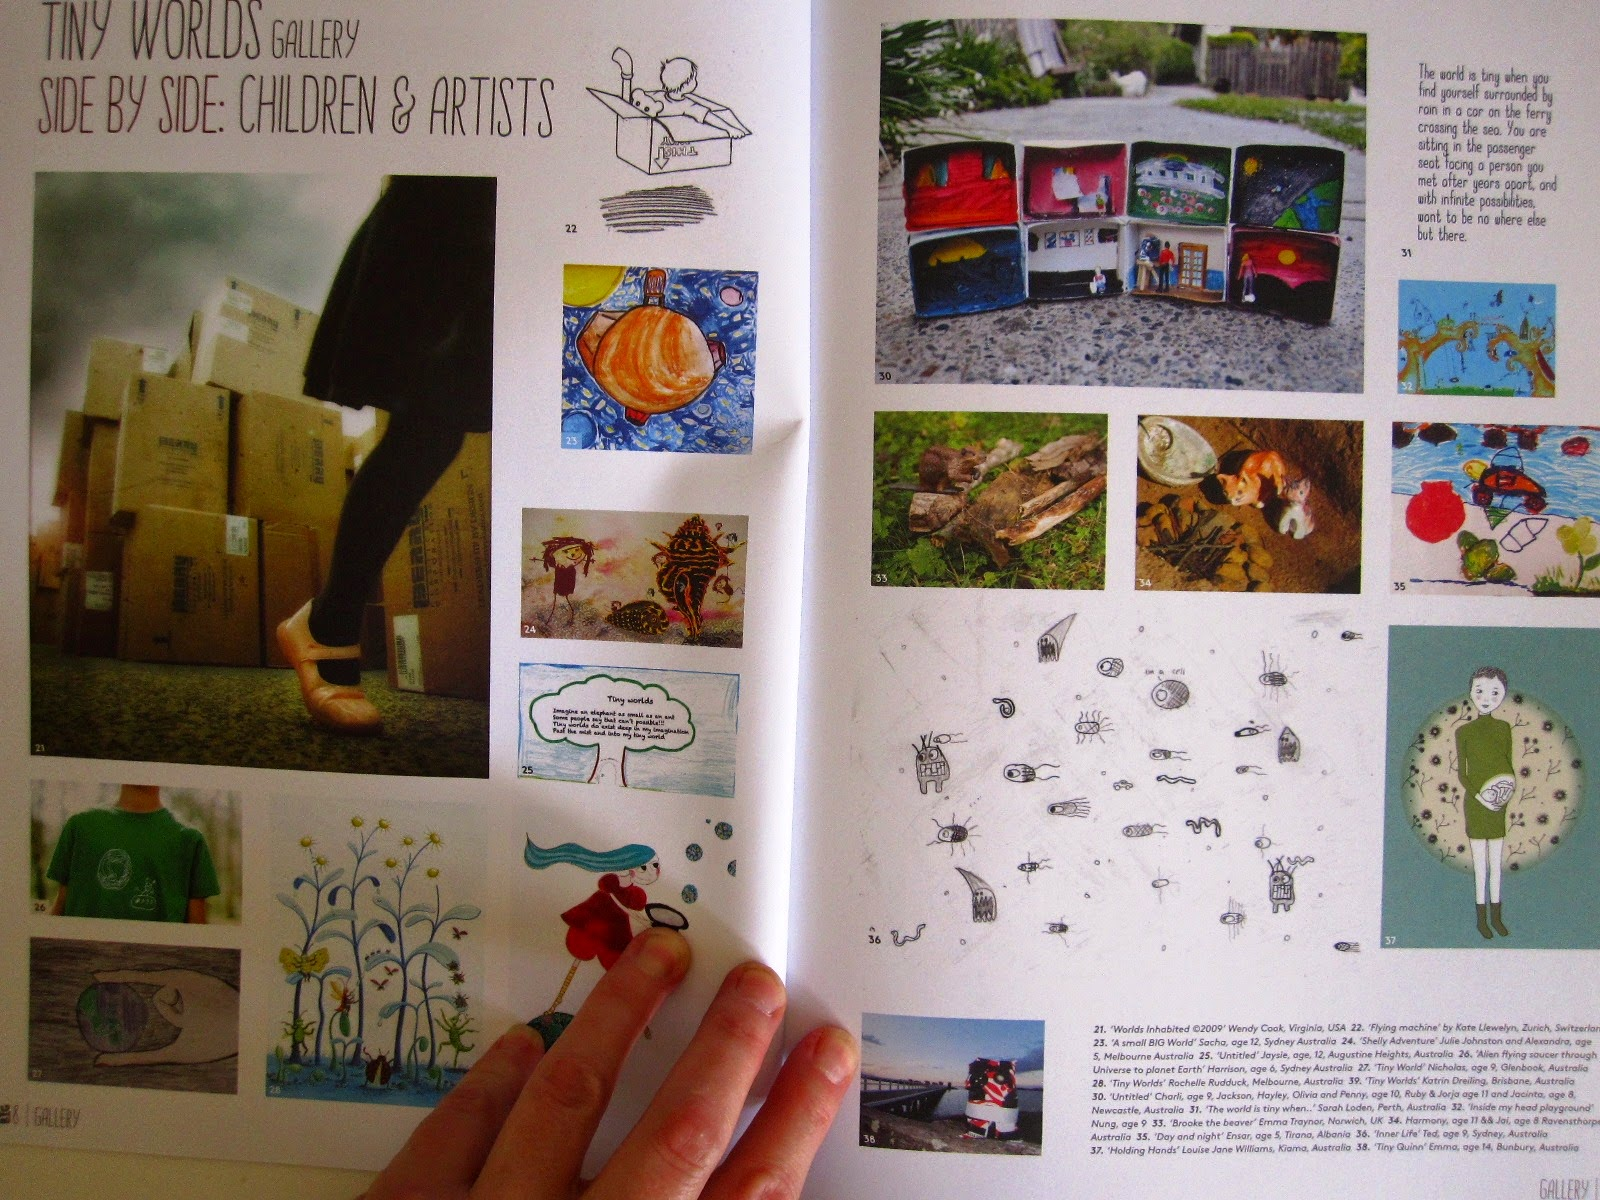 Interior pages of Big Kids Magazine: Tiny Worlds edition showing children's work.